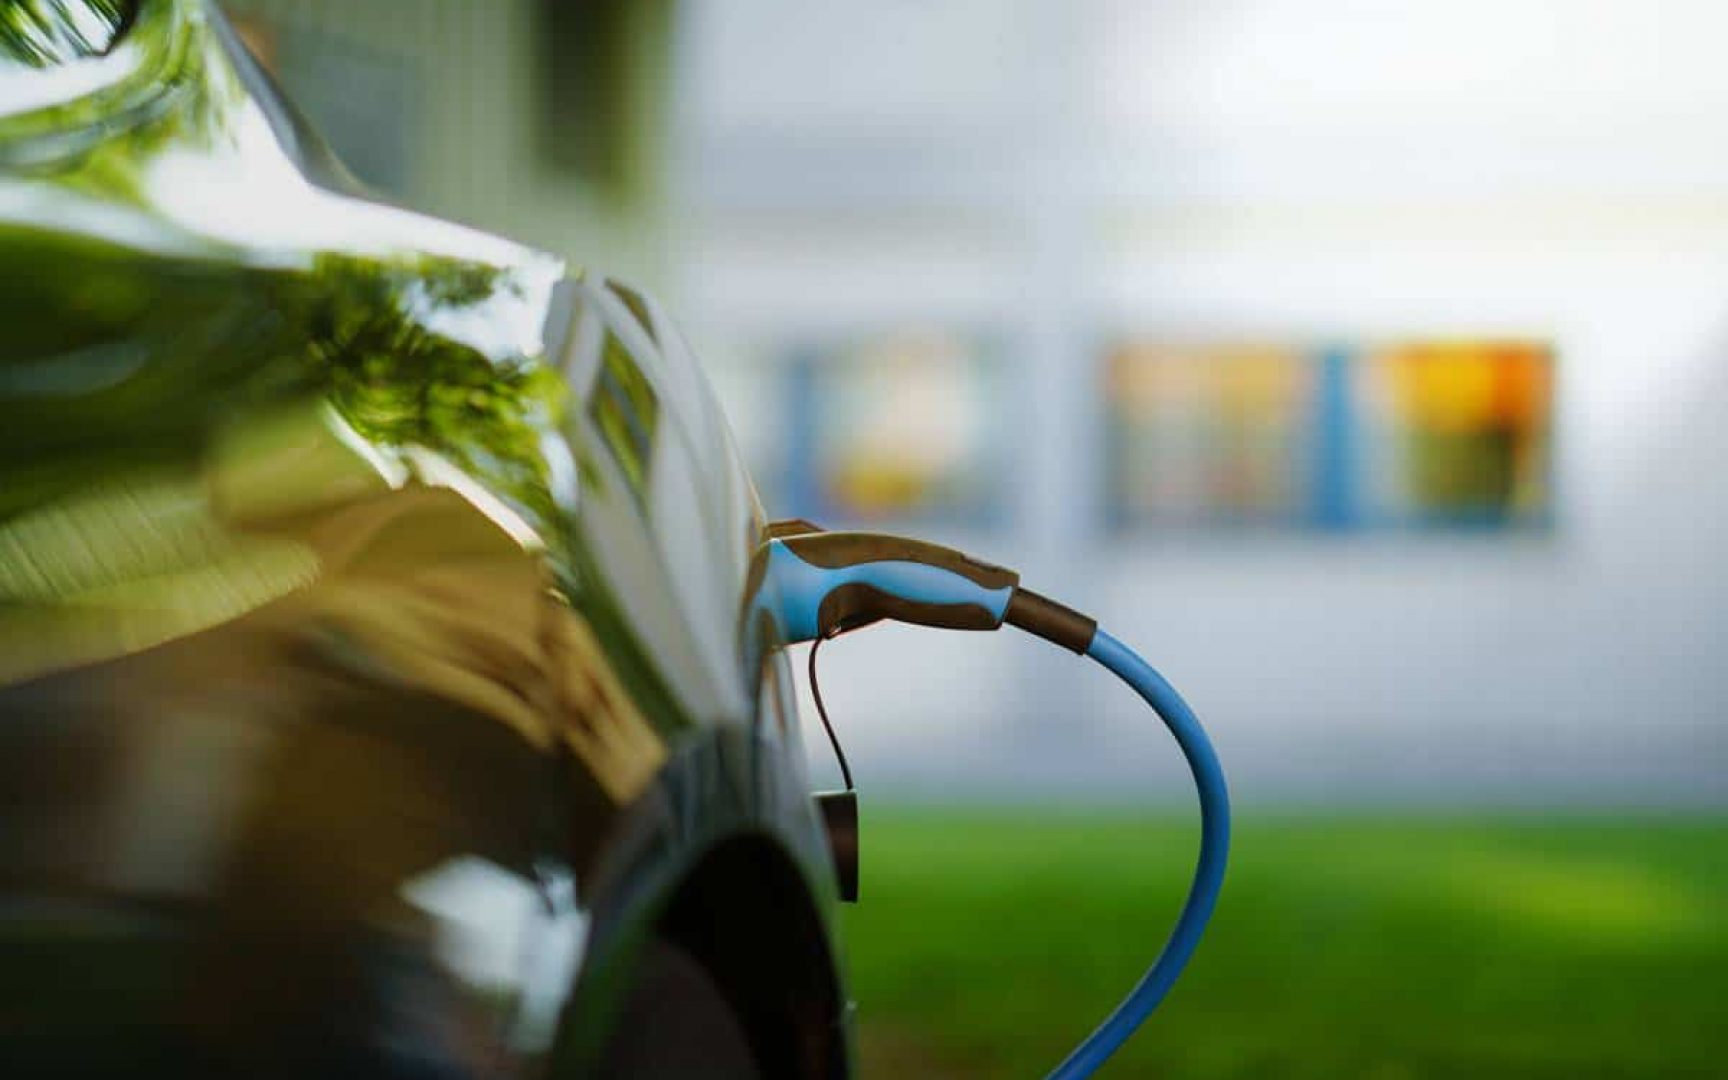 Side view of an electric car being charged